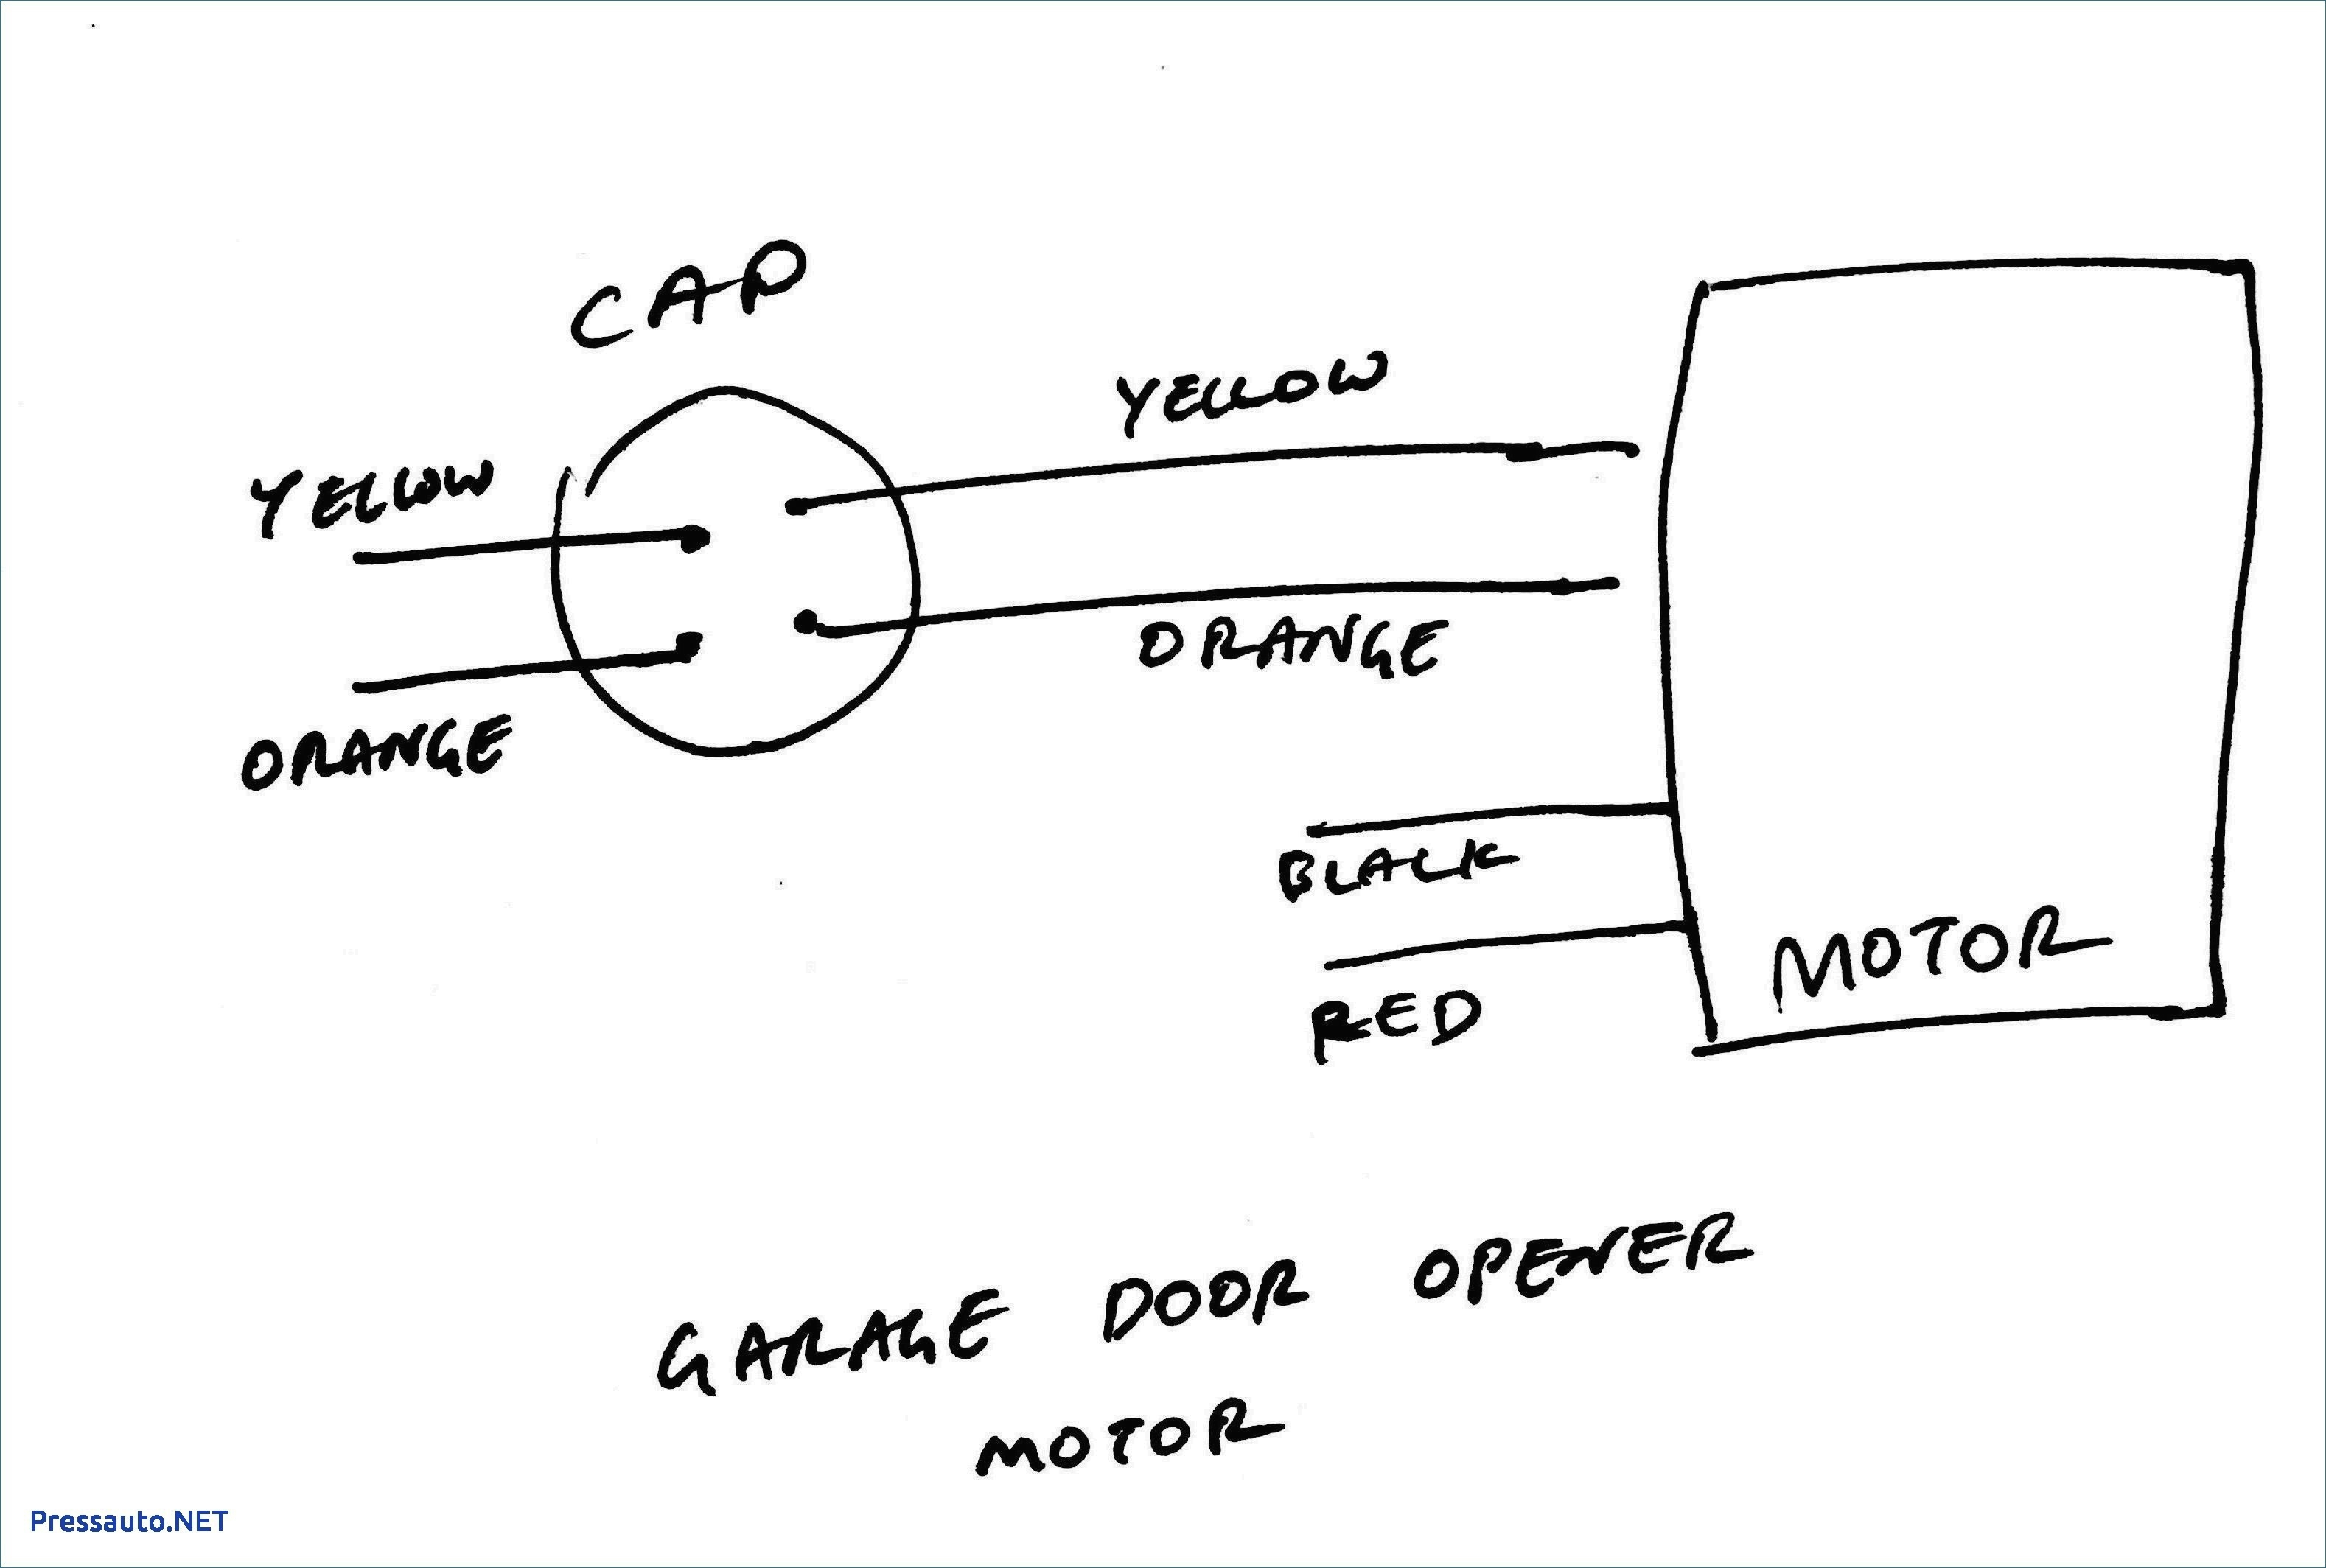 Dc Motor Wiring Diagram 4 Wire - Dc Motor Wiring Diagram 4 Wire Collection  Condenser Fan